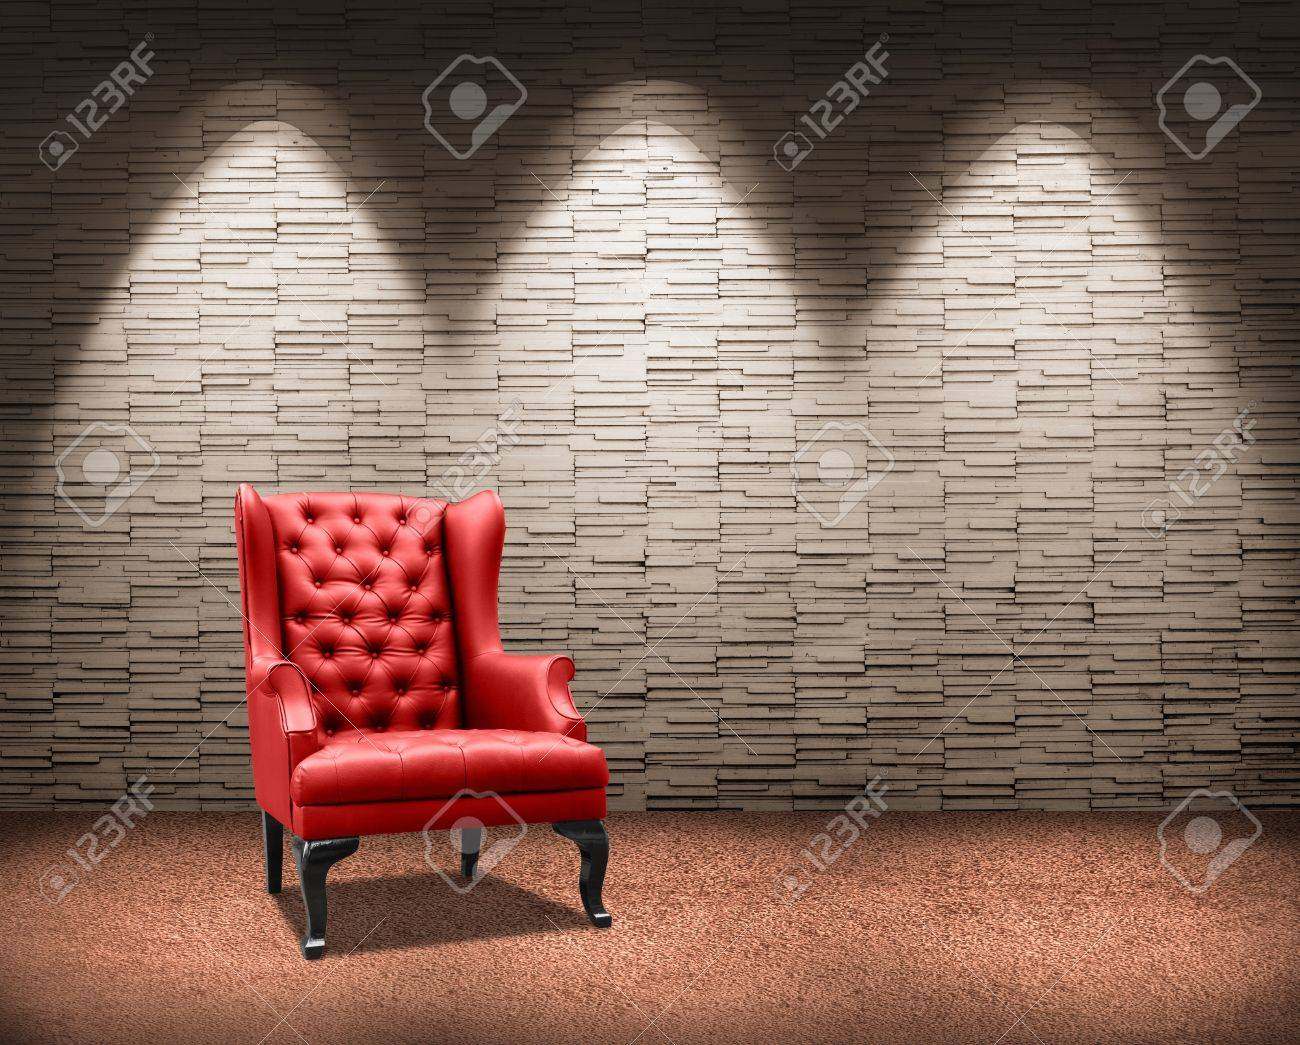 room with lighting on red armchair. Standard-Bild - 18399424